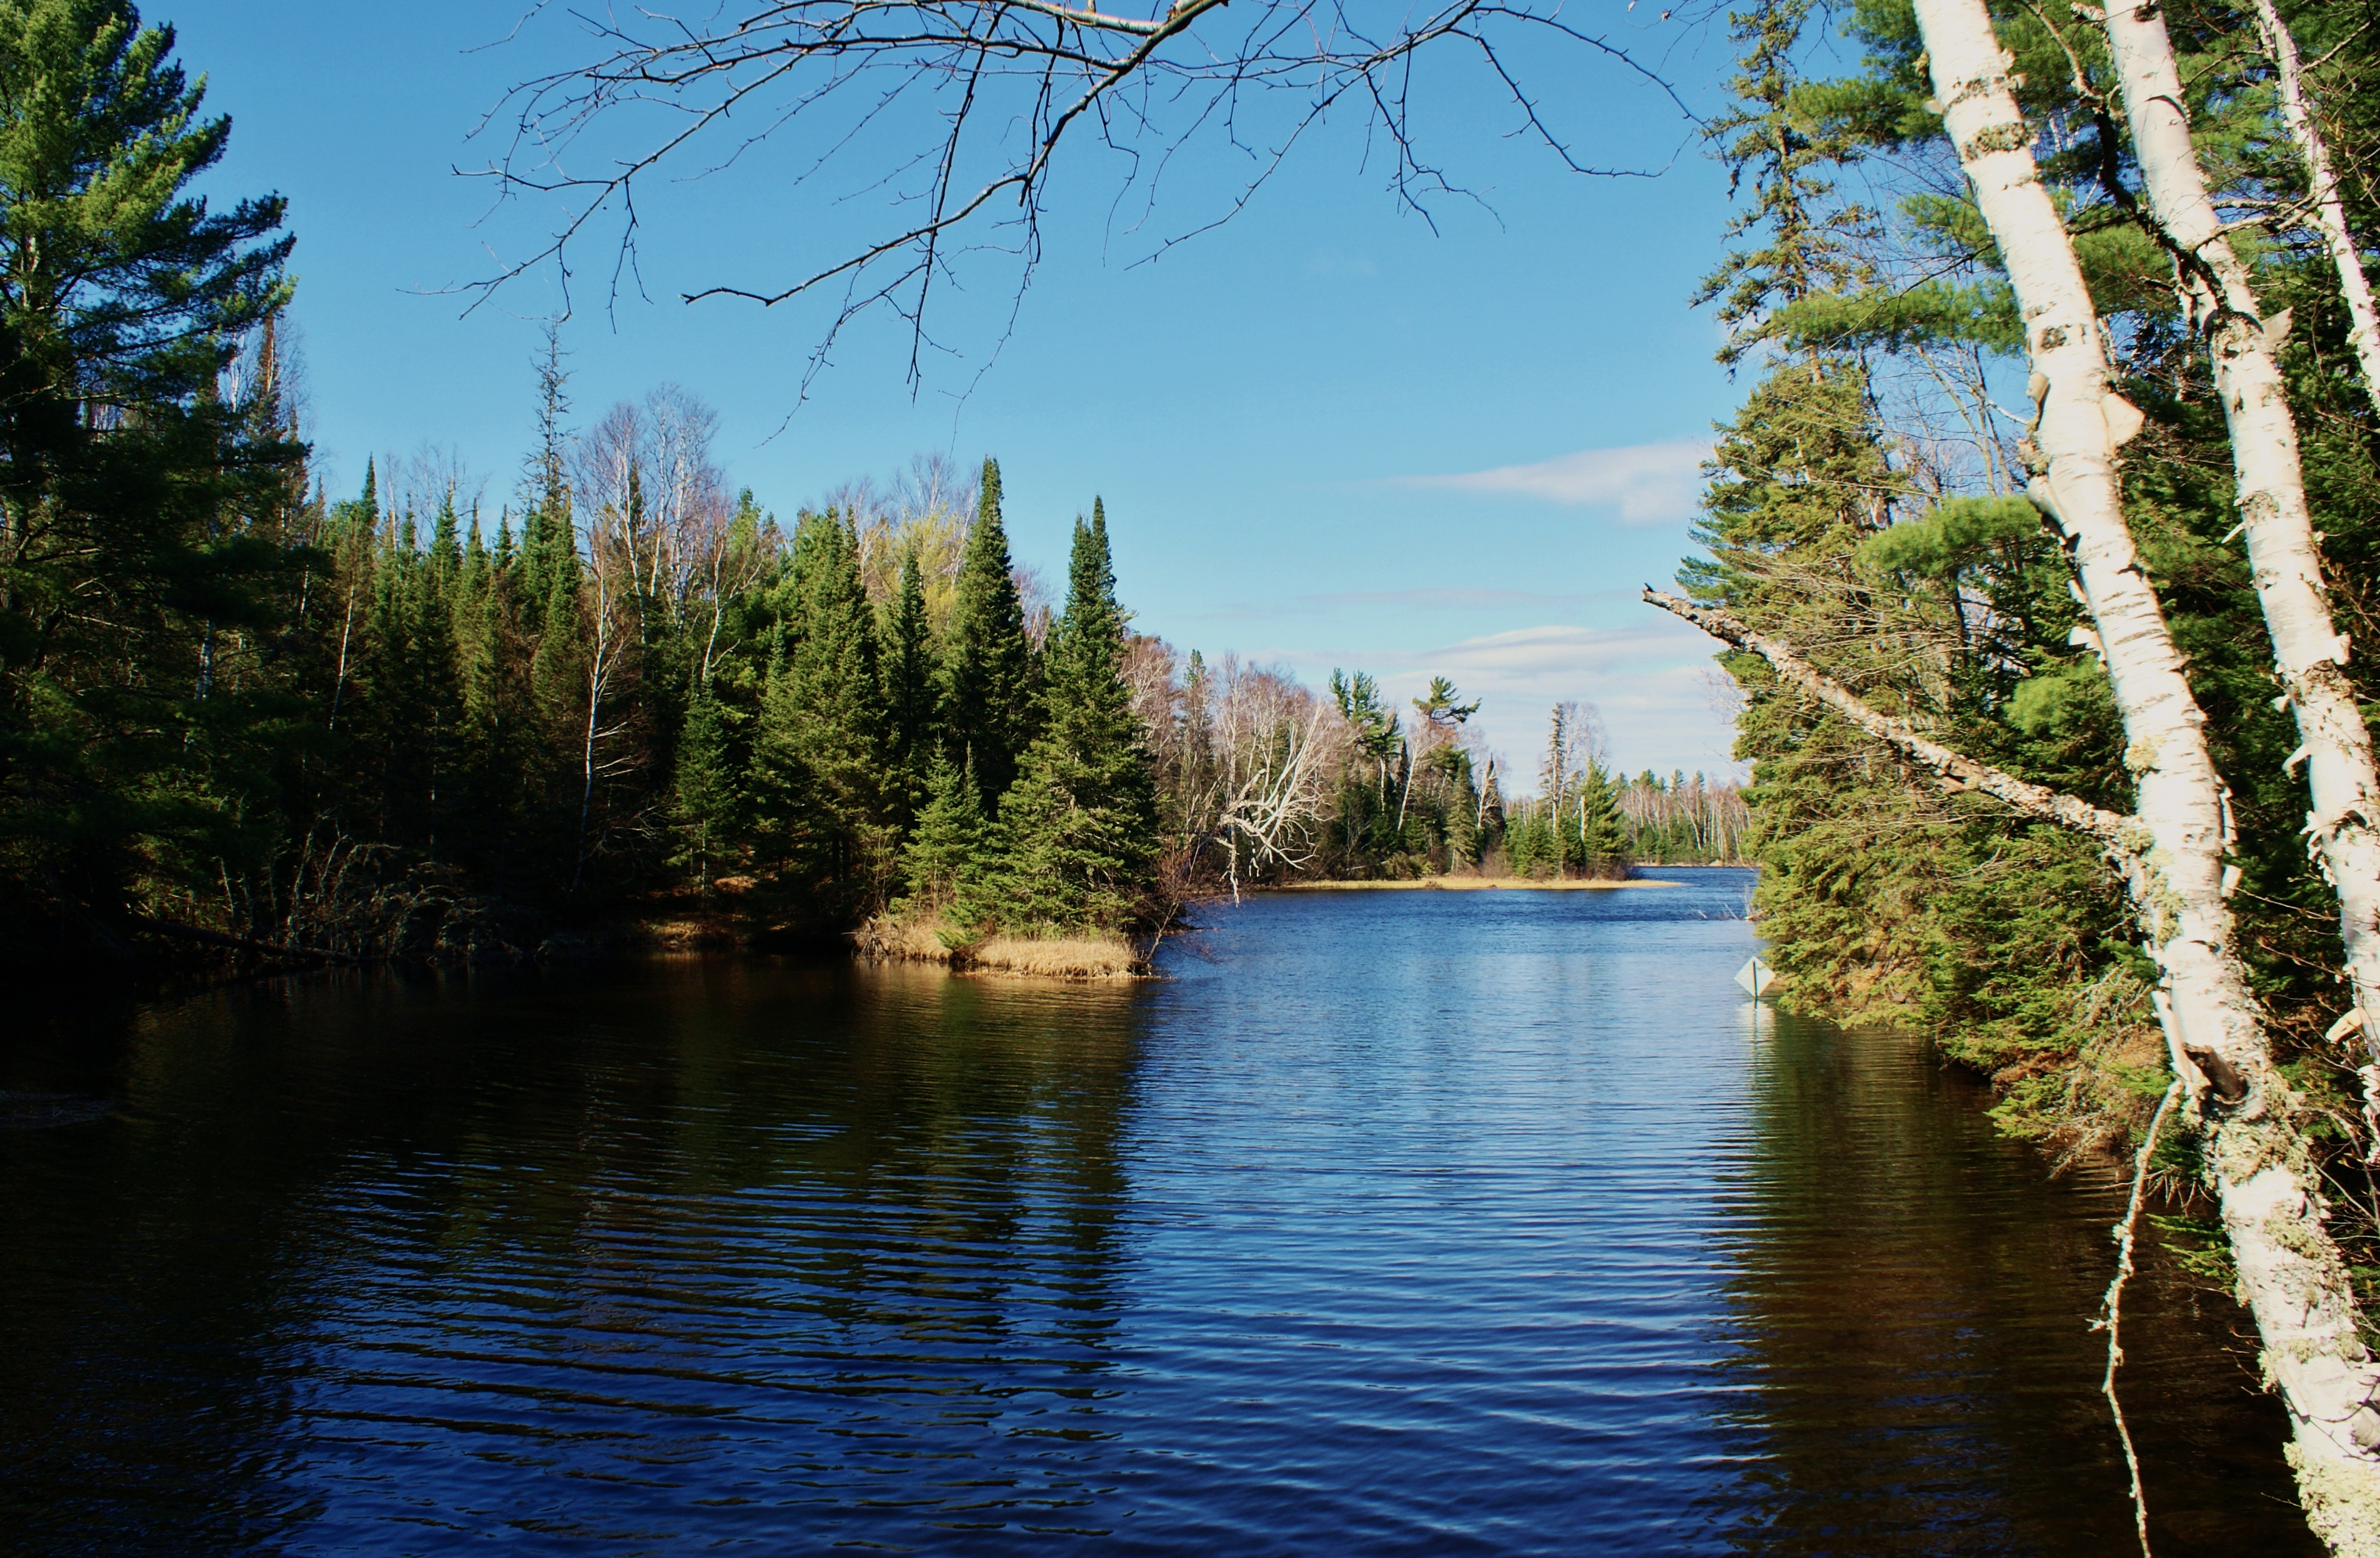 Photo taken from Shay Dam near Mercer, Wisconsin. Photo by flickr user chumlee10 (CC BY 2.0) https://www.flickr.com/photos/chumlee/7069110489 https://creativecommons.org/licenses/by/2.0/